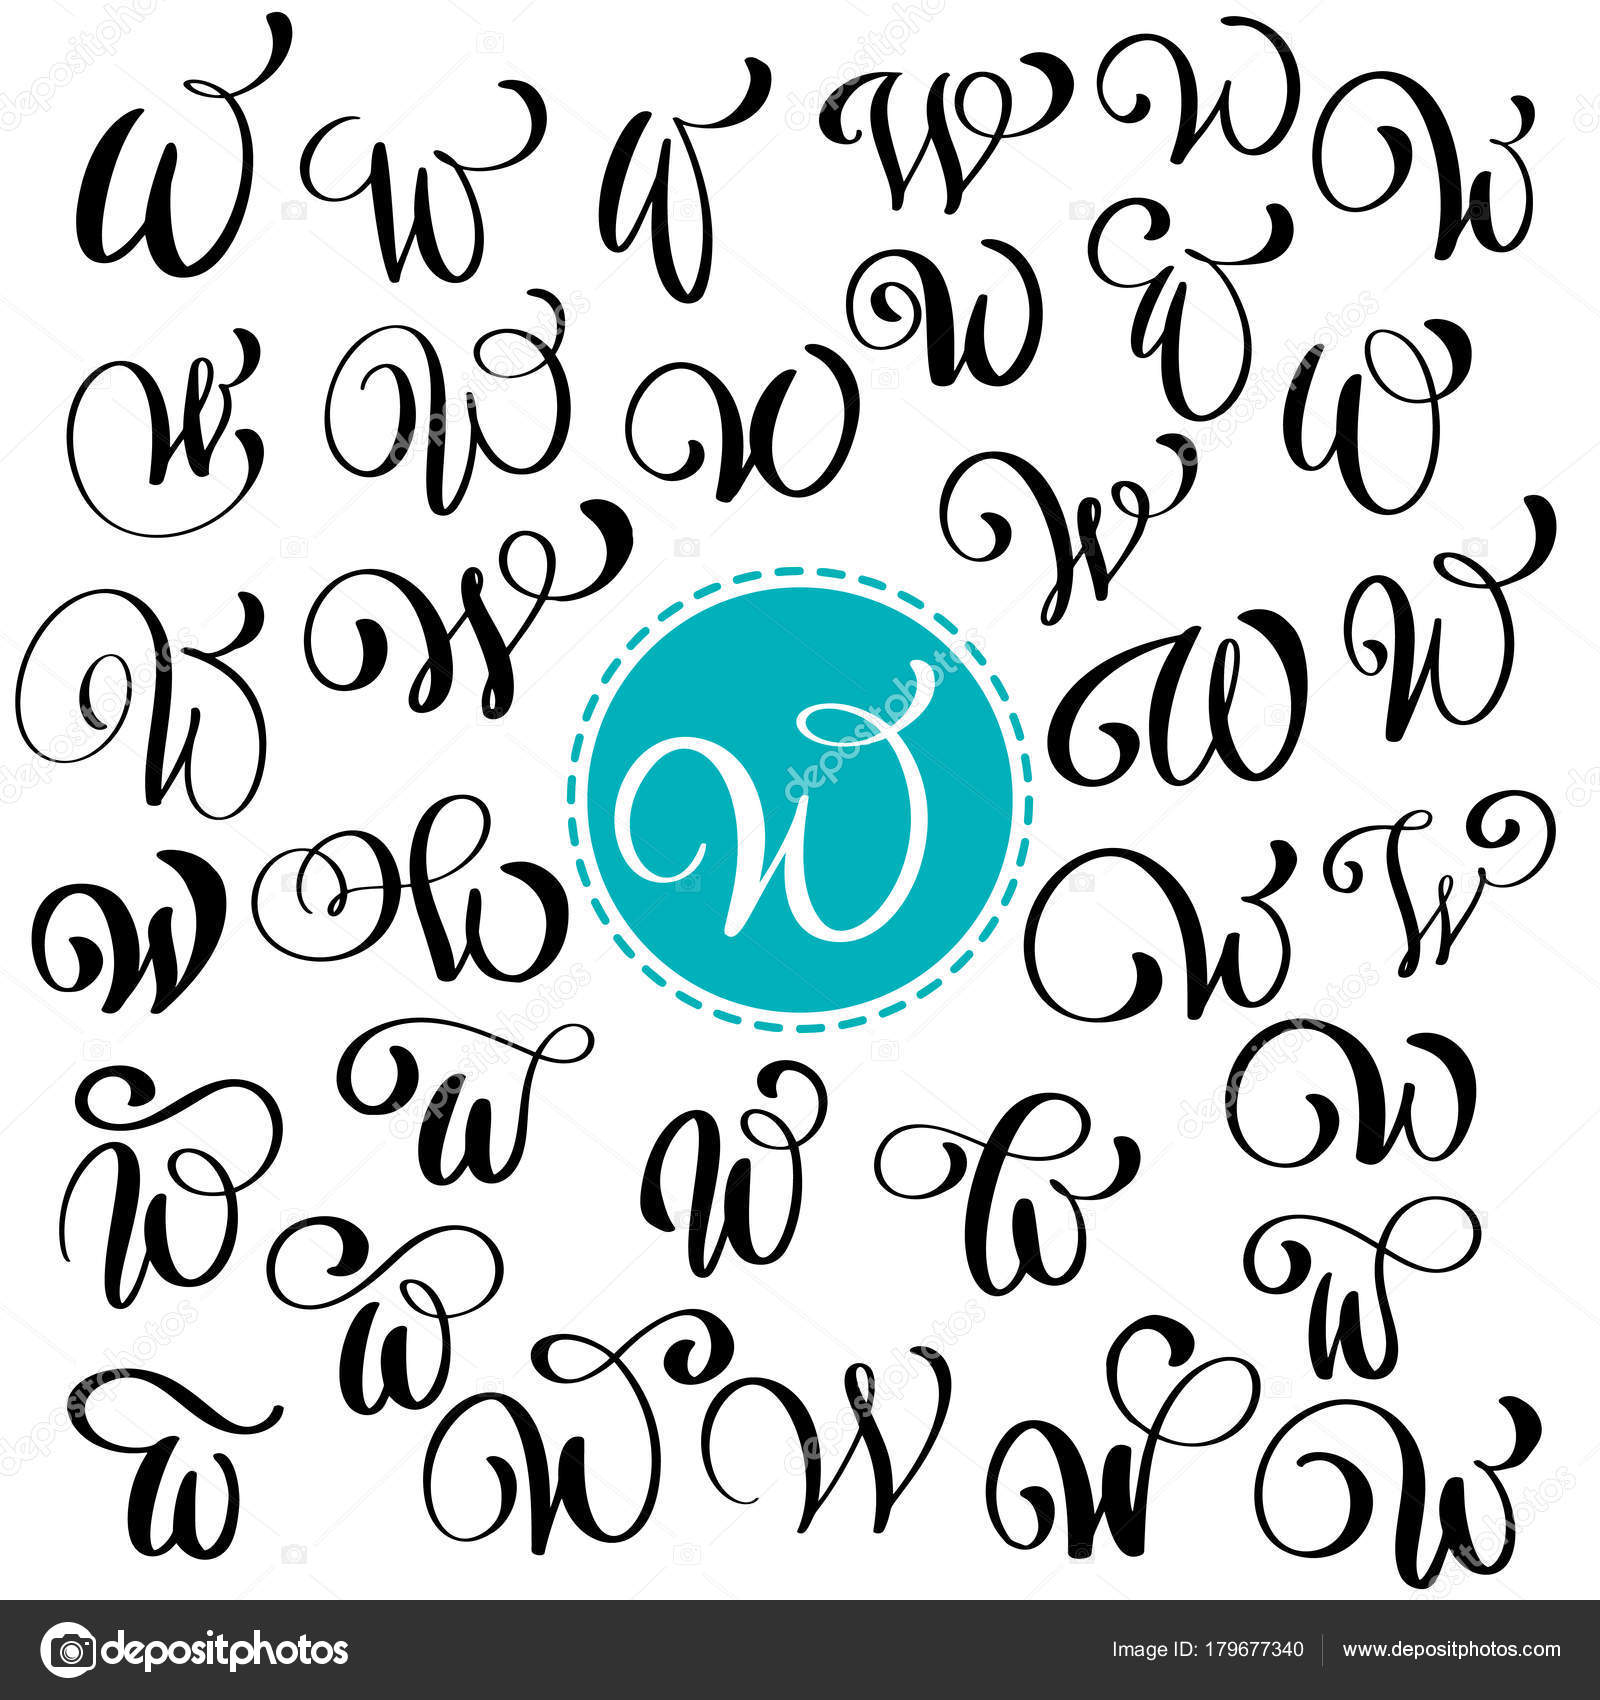 Set Of Hand Drawn Vector Calligraphy Letter W Script Font Isolated Letters Written With Ink Handwritten Brush Style Lettering For Logos Packaging